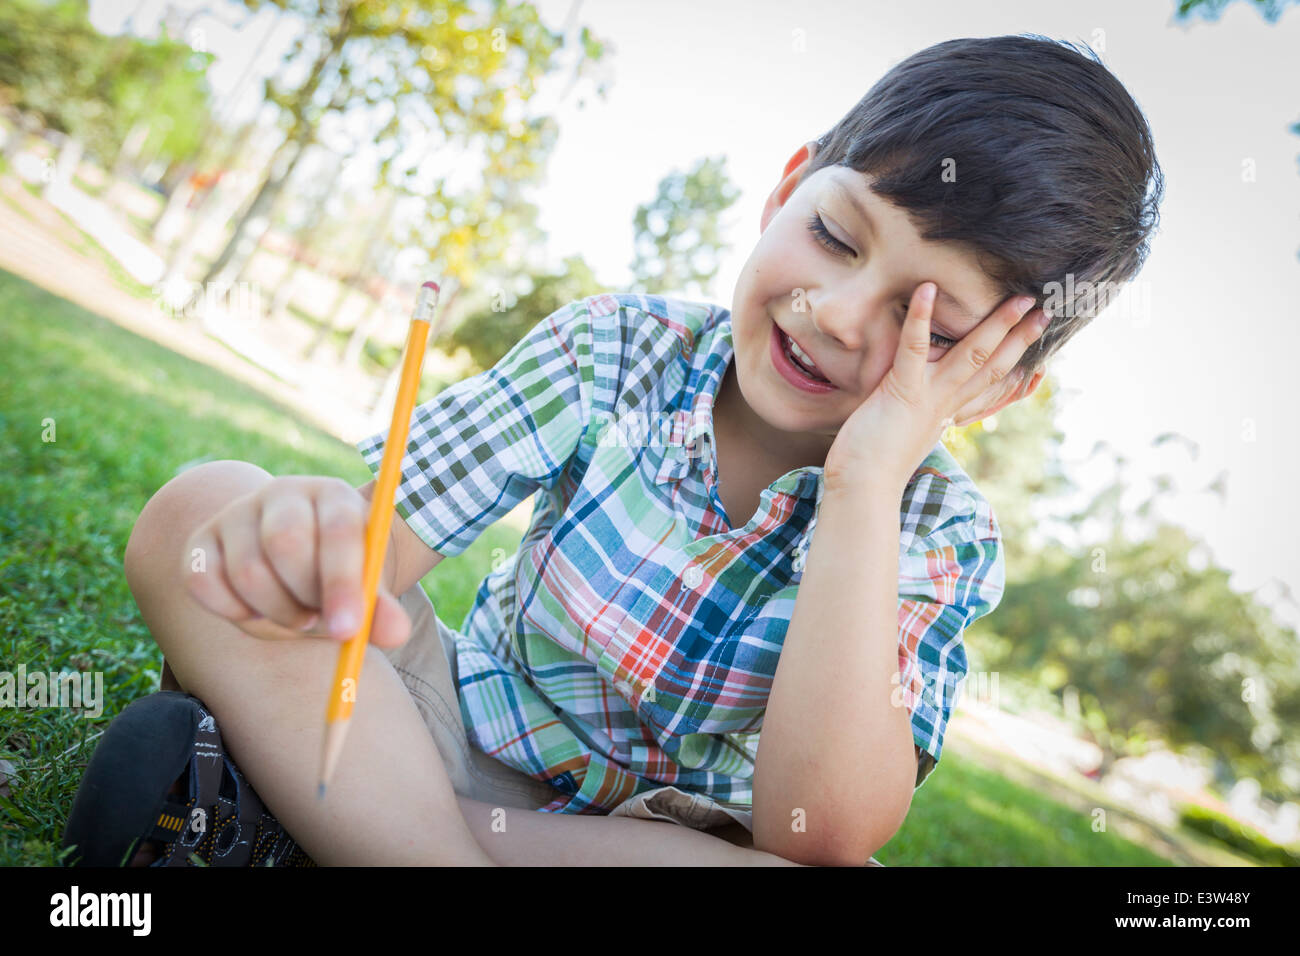 Frustrated Cute Young Boy Holding Pencil Sitting on the Grass Outdoors. - Stock Image